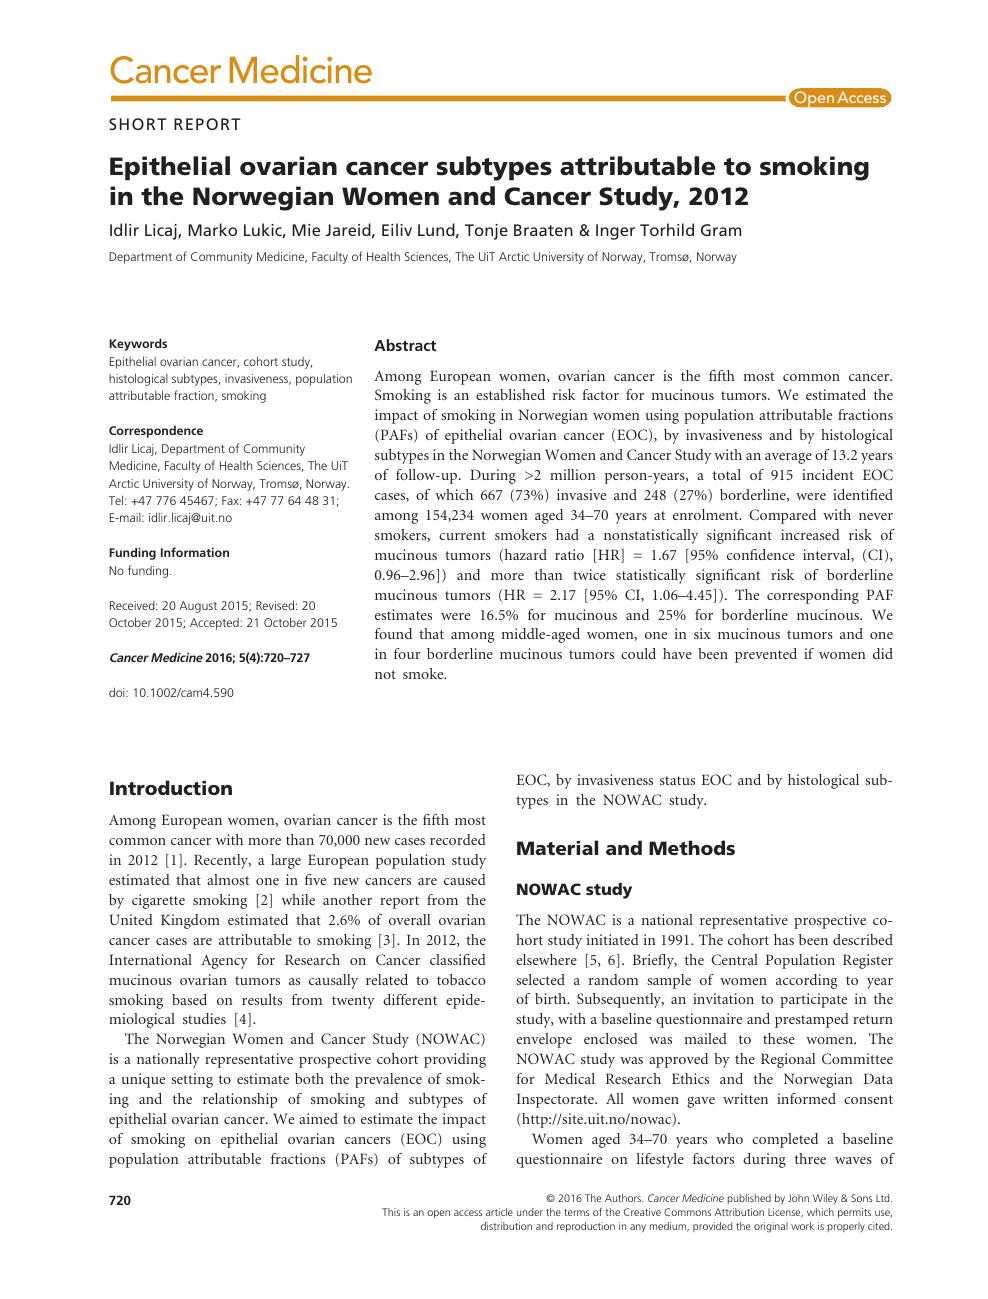 Epithelial Ovarian Cancer Subtypes Attributable To Smoking In The Norwegian Women And Cancer Study 2012 Topic Of Research Paper In Health Sciences Download Scholarly Article Pdf And Read For Free On